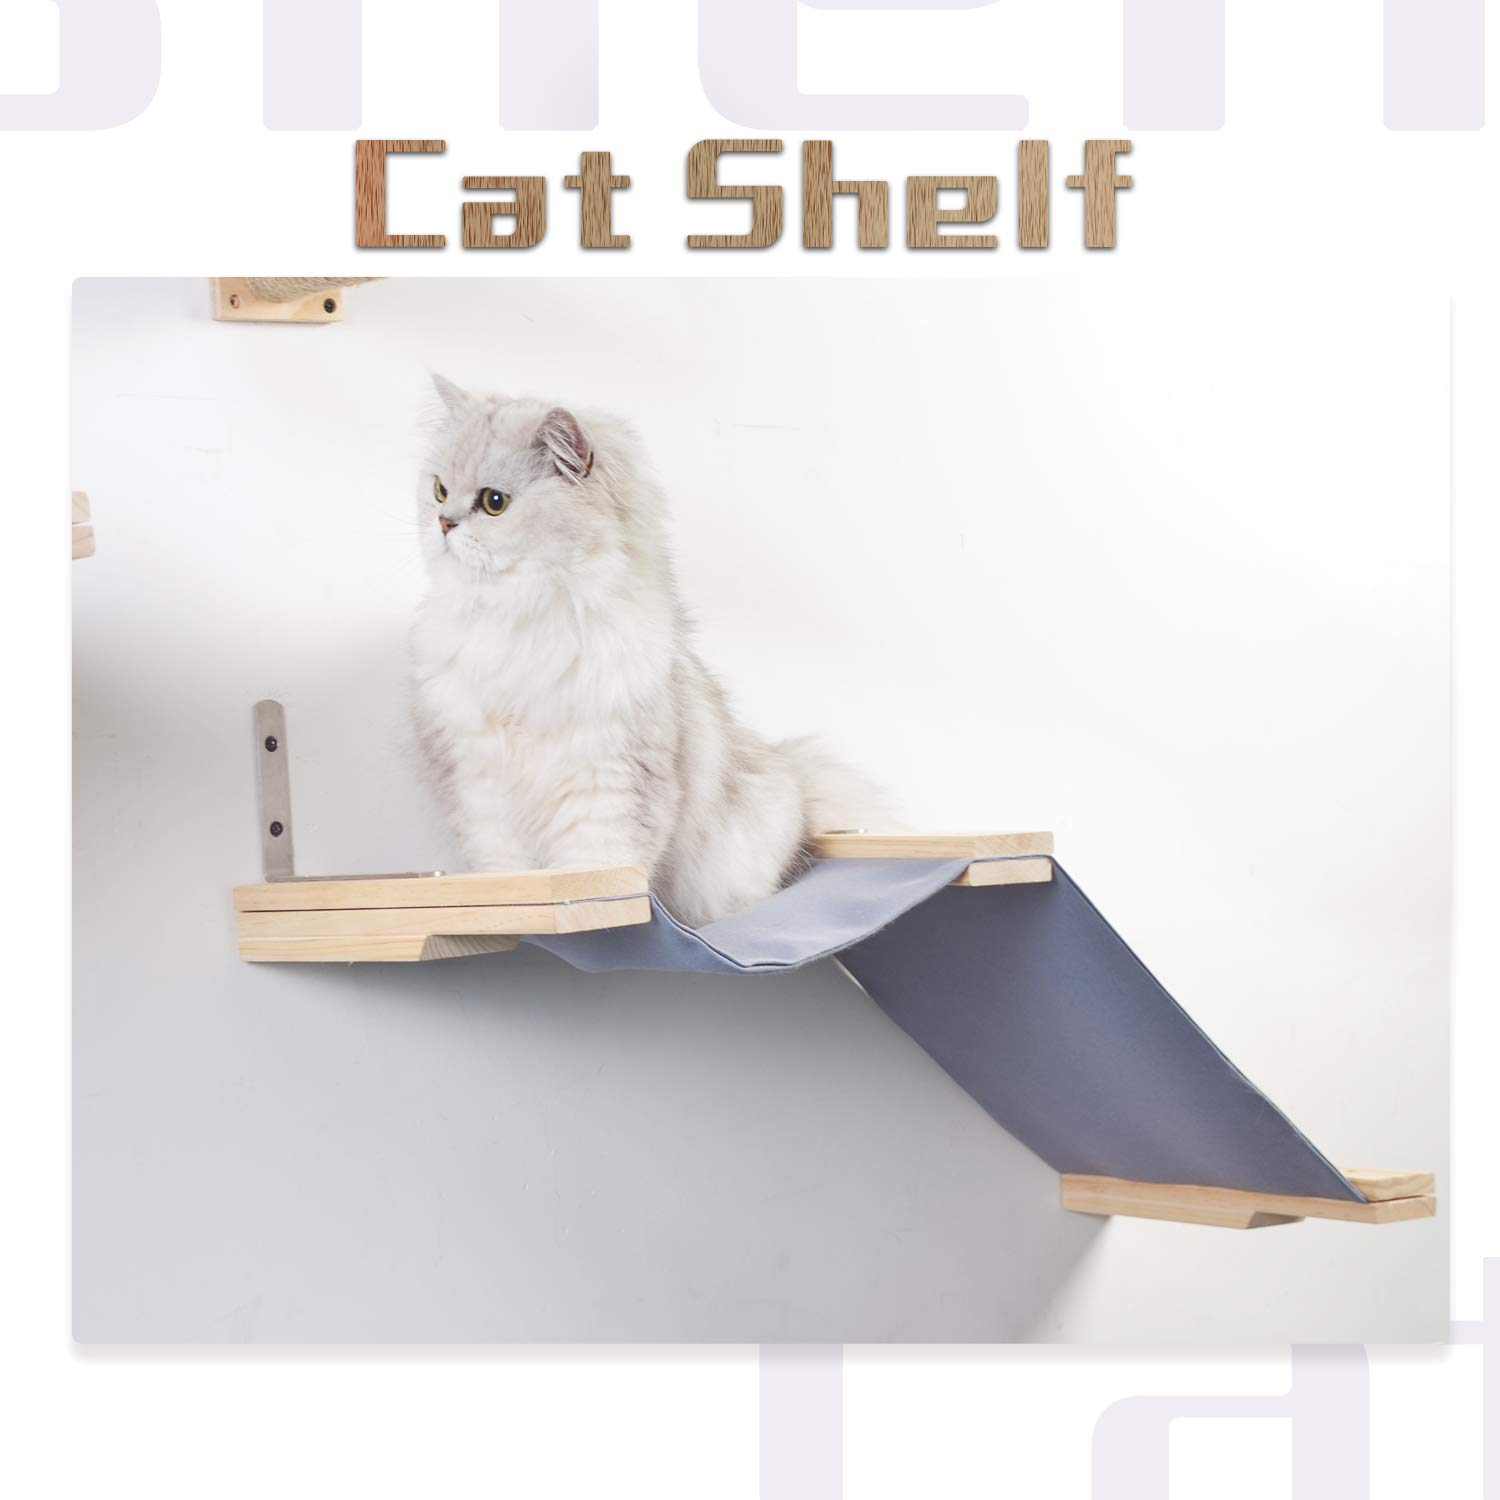 Scurrty Handmade Wall Mounted Cat Shelf Wooden Cat Hammock Perch with Bed Modern Cat Furniture Size L by Scurrty